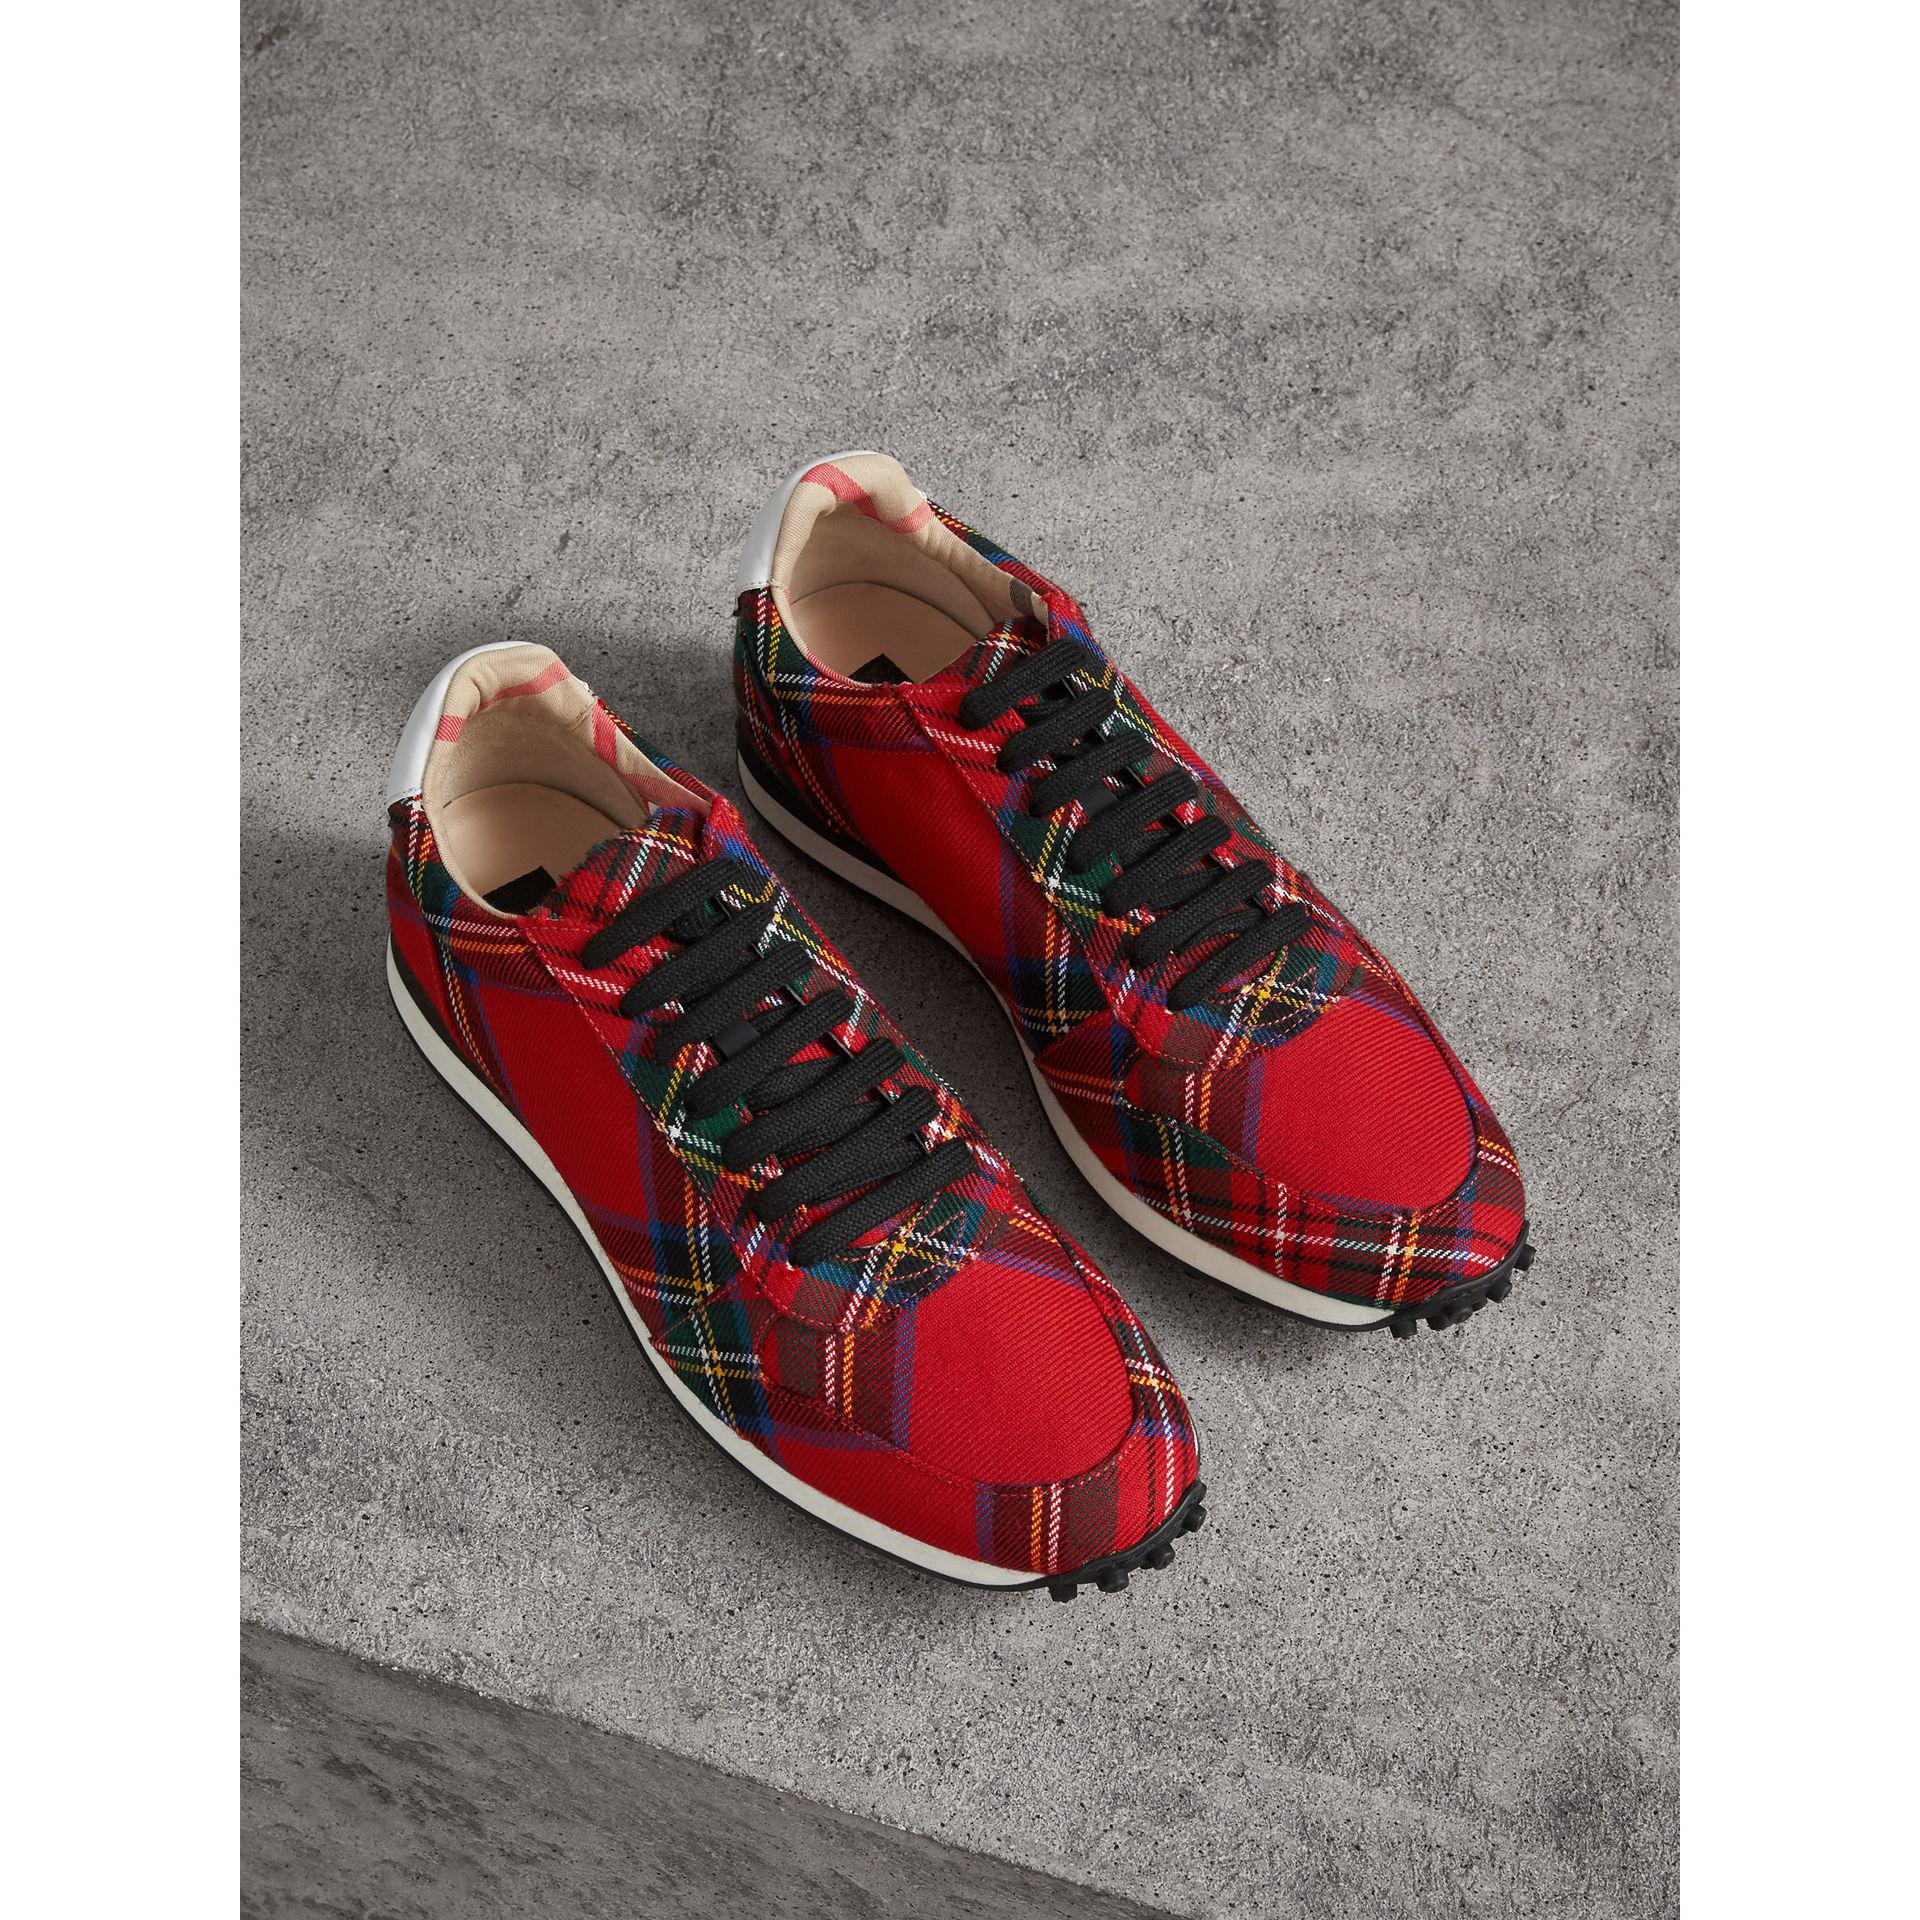 Largest Supplier Limited Edition Online Burberry Amelia tartan wool sneakers Cheap Prices Reliable Shop For For Sale From China Online lFGJnkMDq